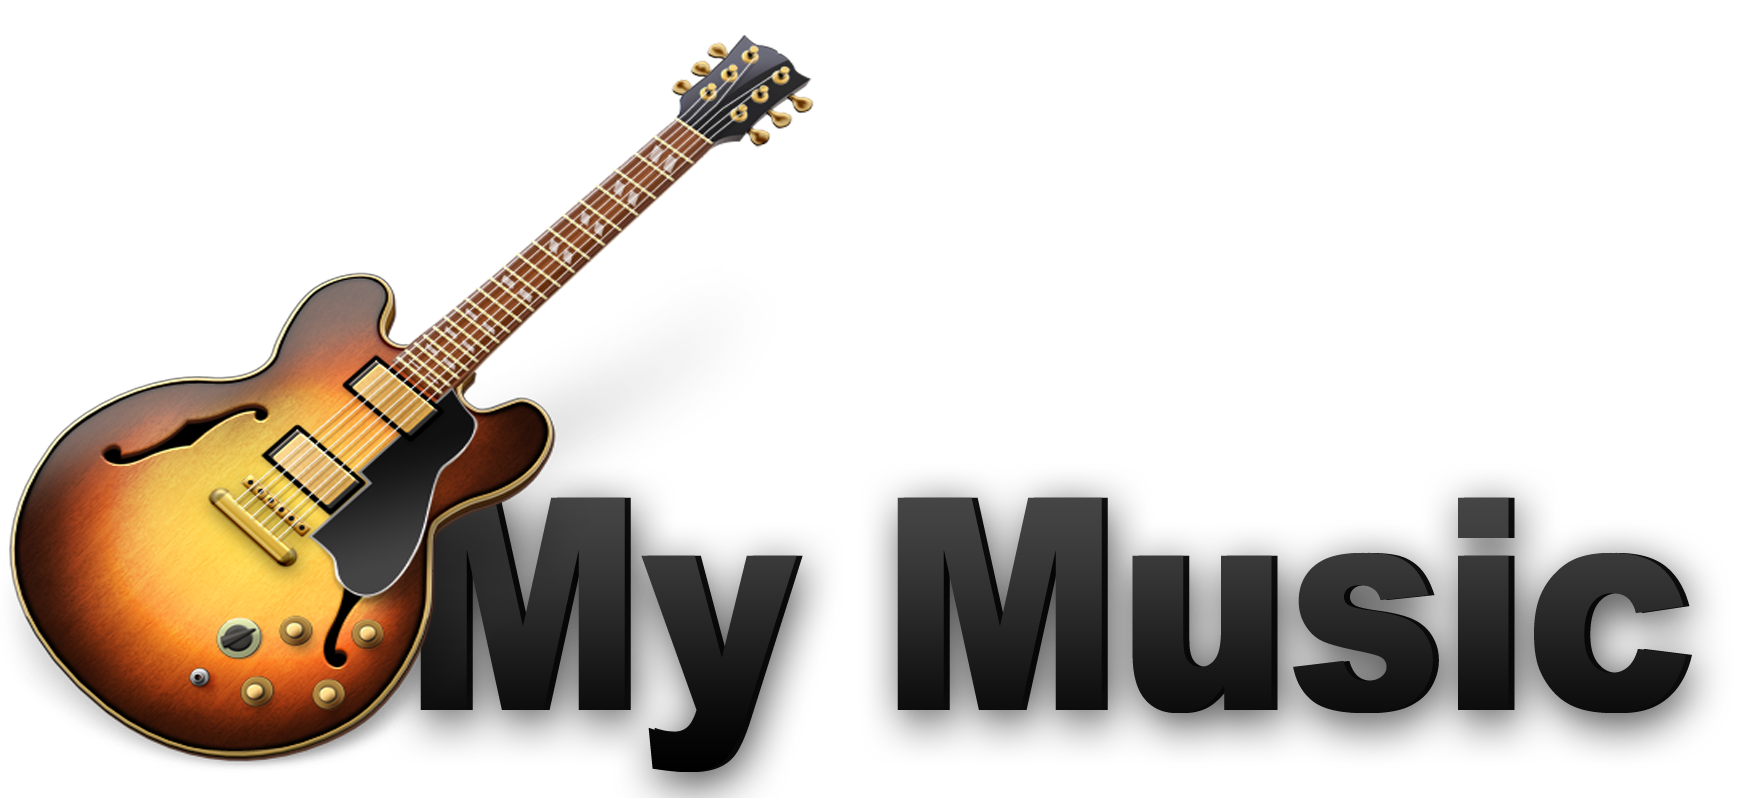 my music Itunes brings all your music together buy songs, create playlists, organize your library then sync your devices and enjoy your music anywhere.